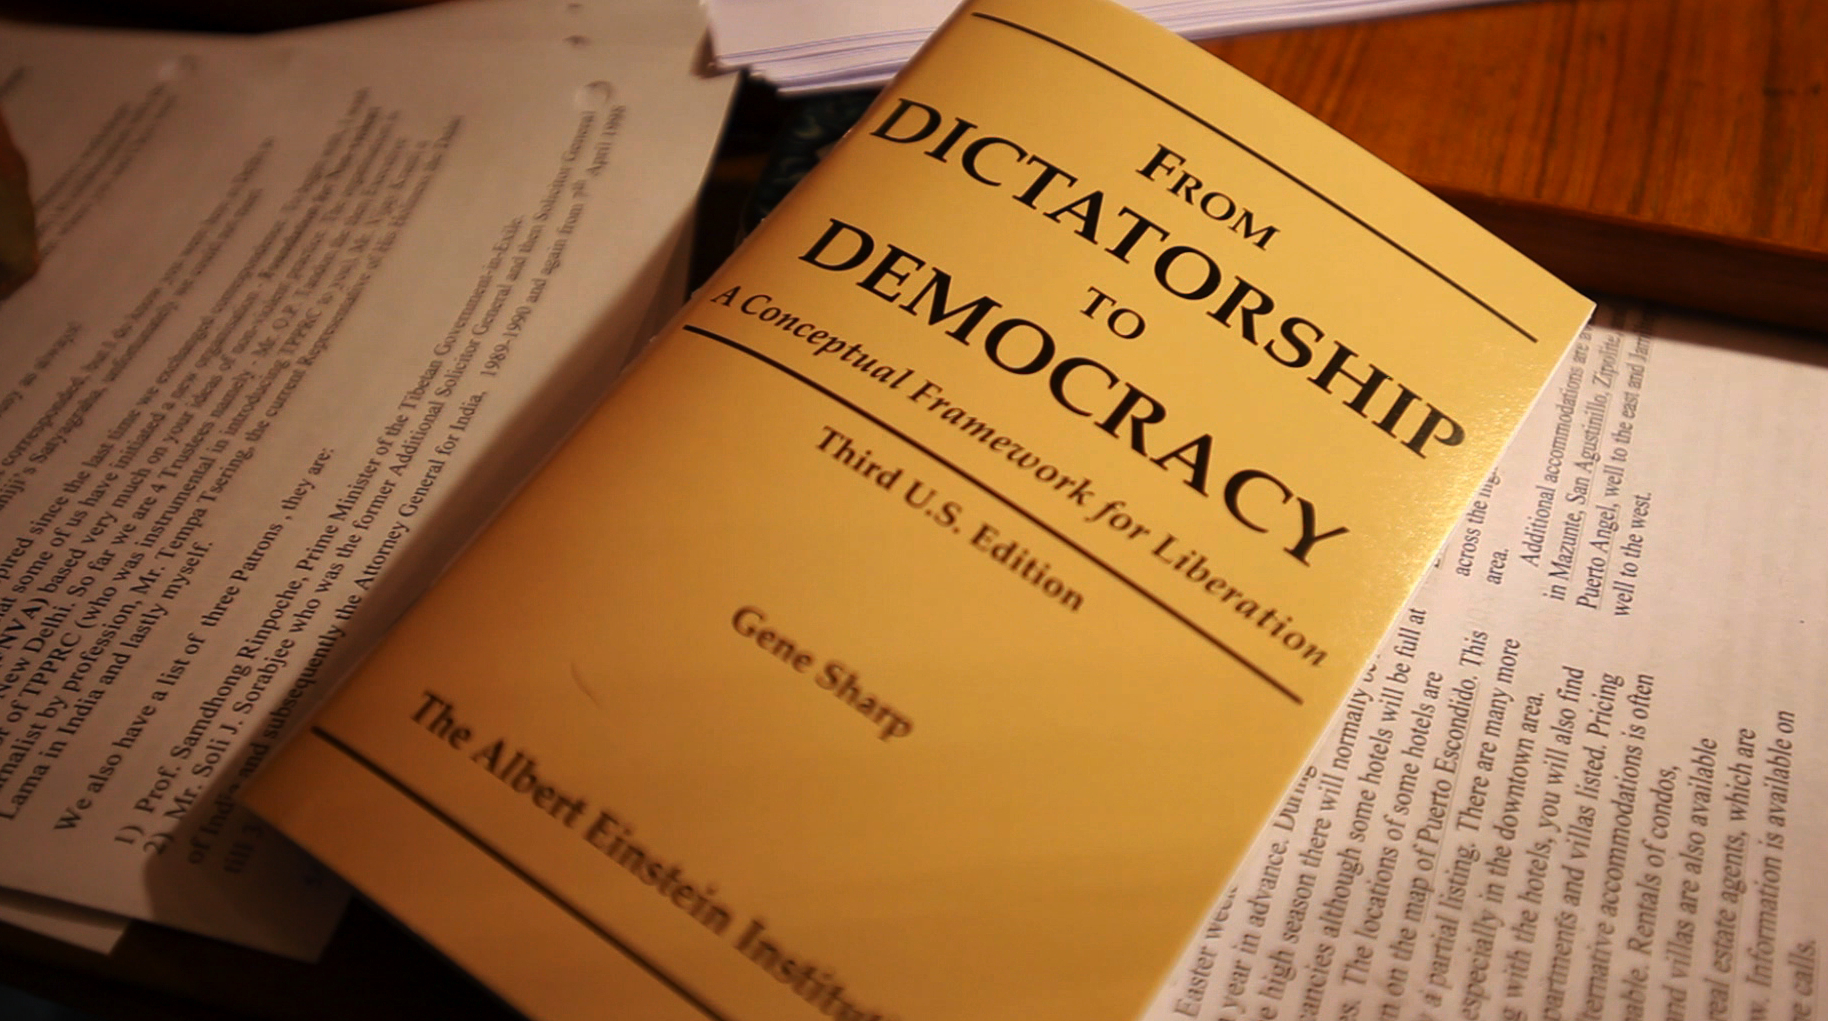 an essay on democracy is better than dictatorship